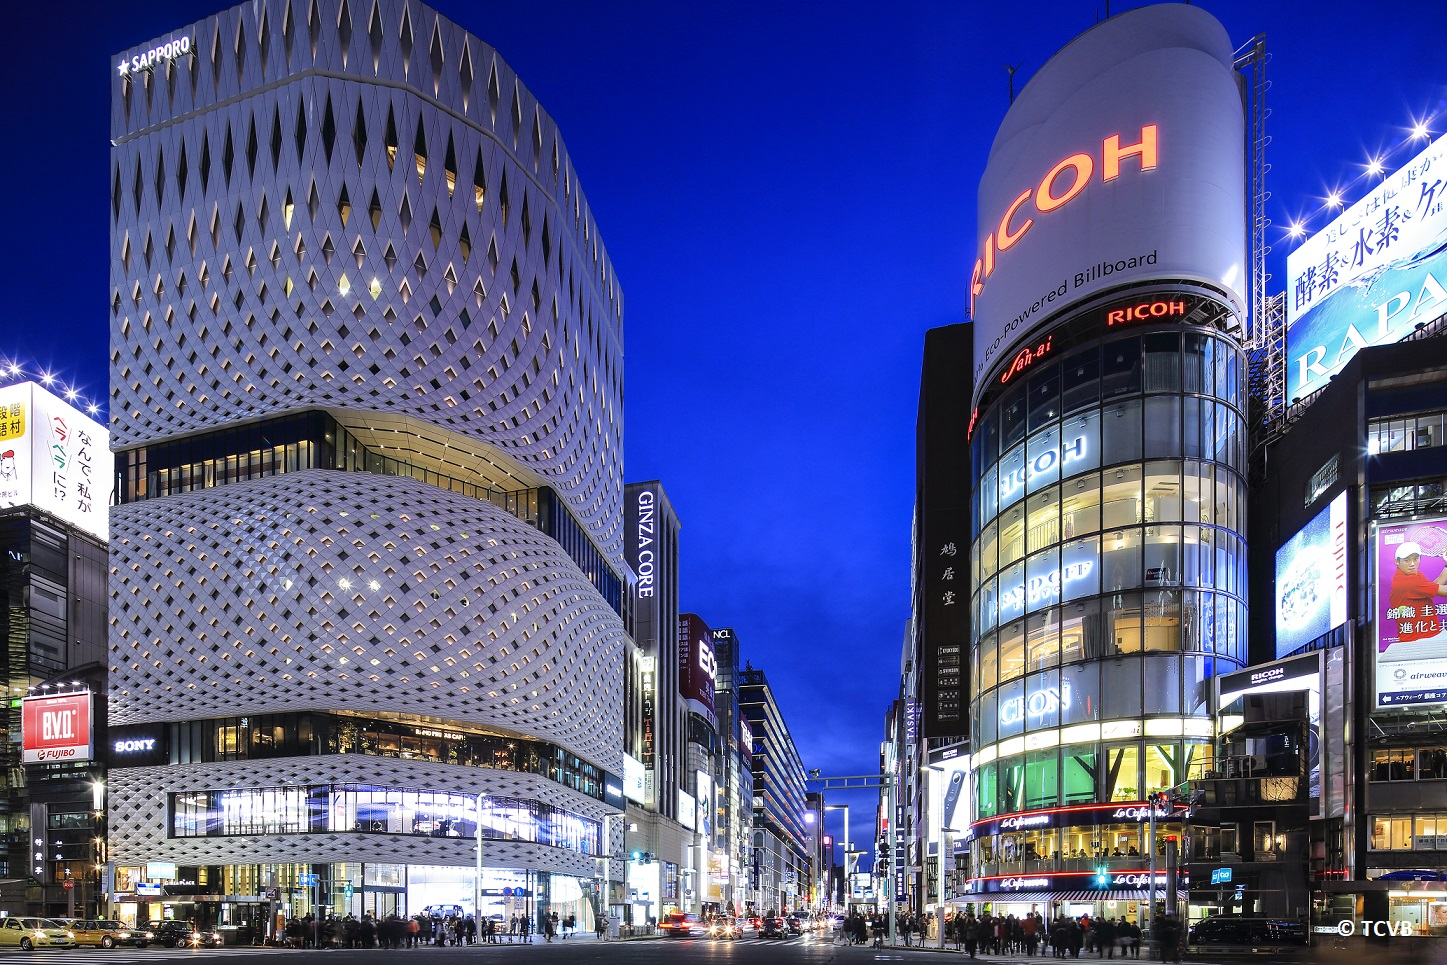 Tokyo Ginza | Silver Place - Shopping District